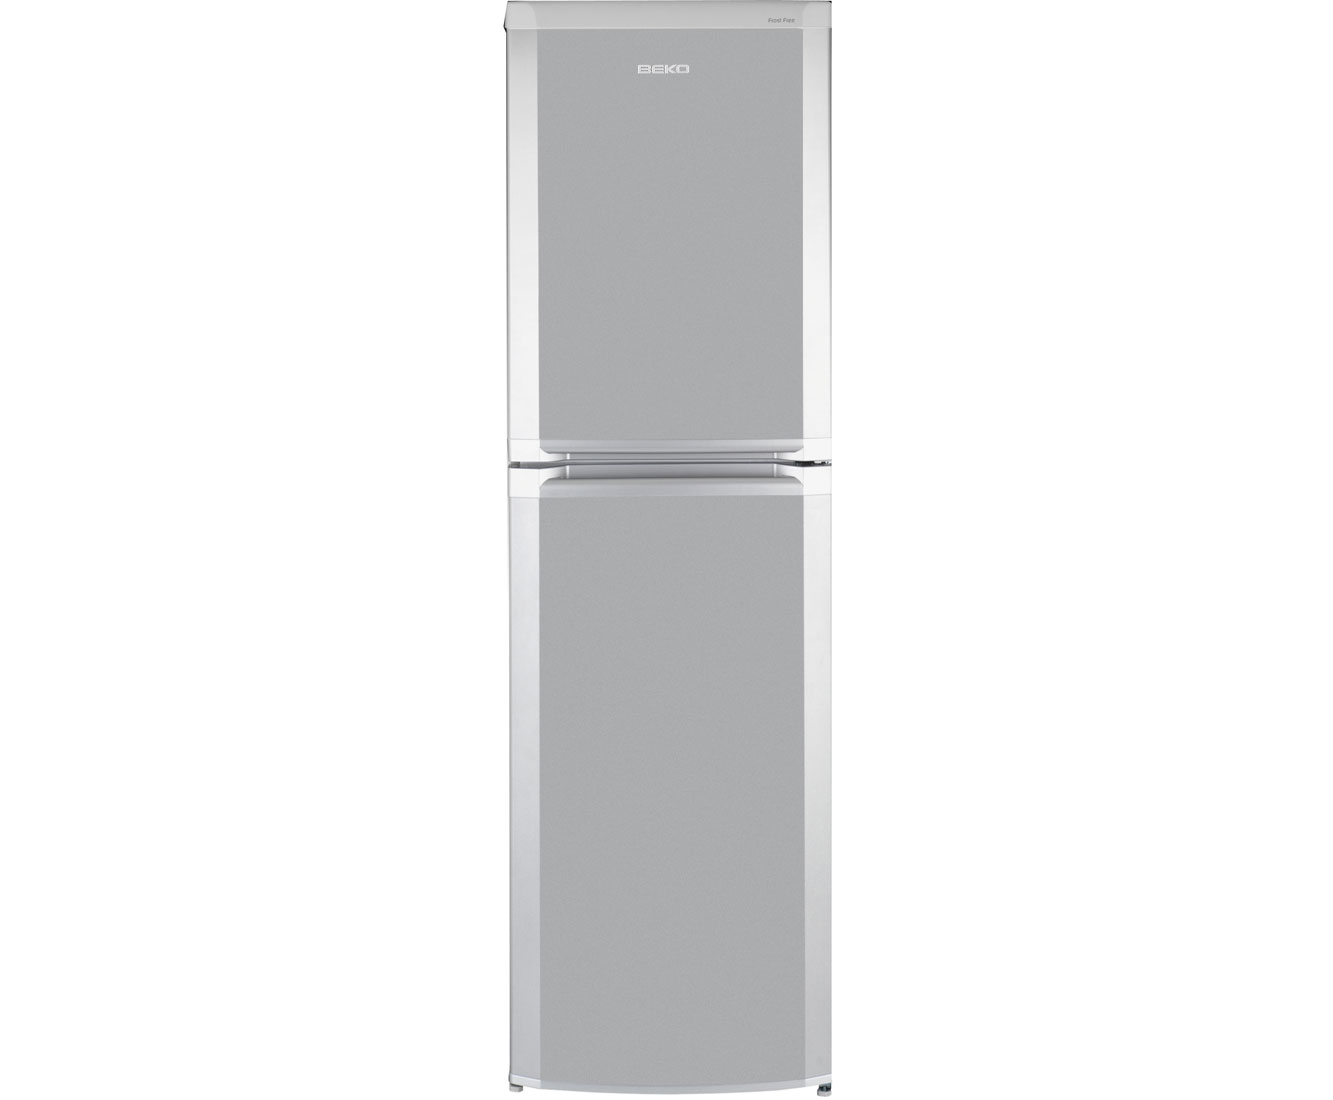 Beko CF5015APS Free Standing Fridge Freezer Frost Free in Silver